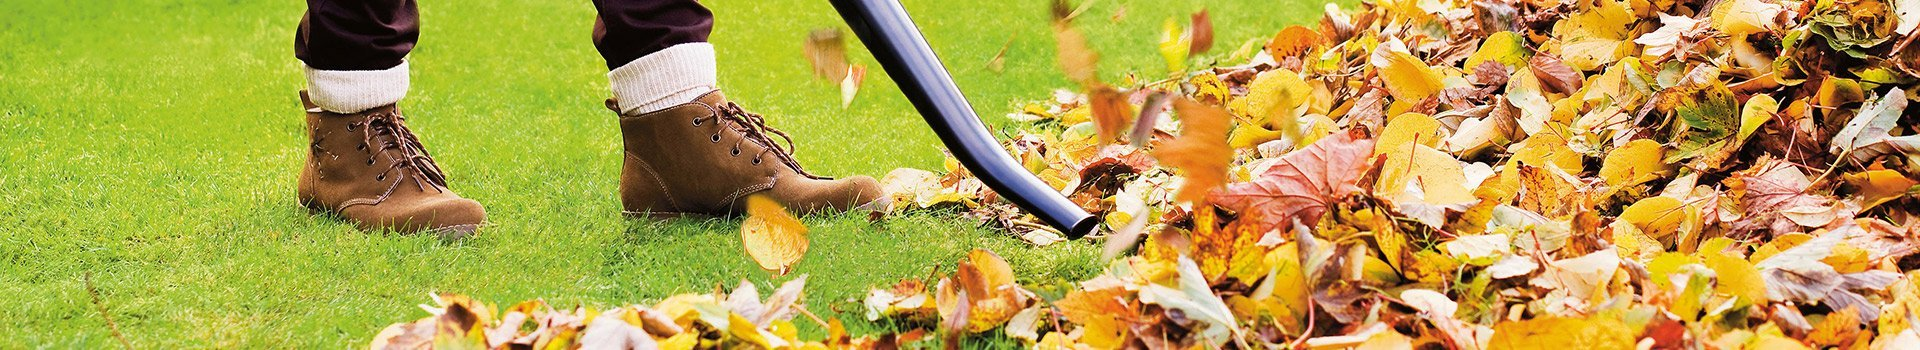 Garden Jobs In October